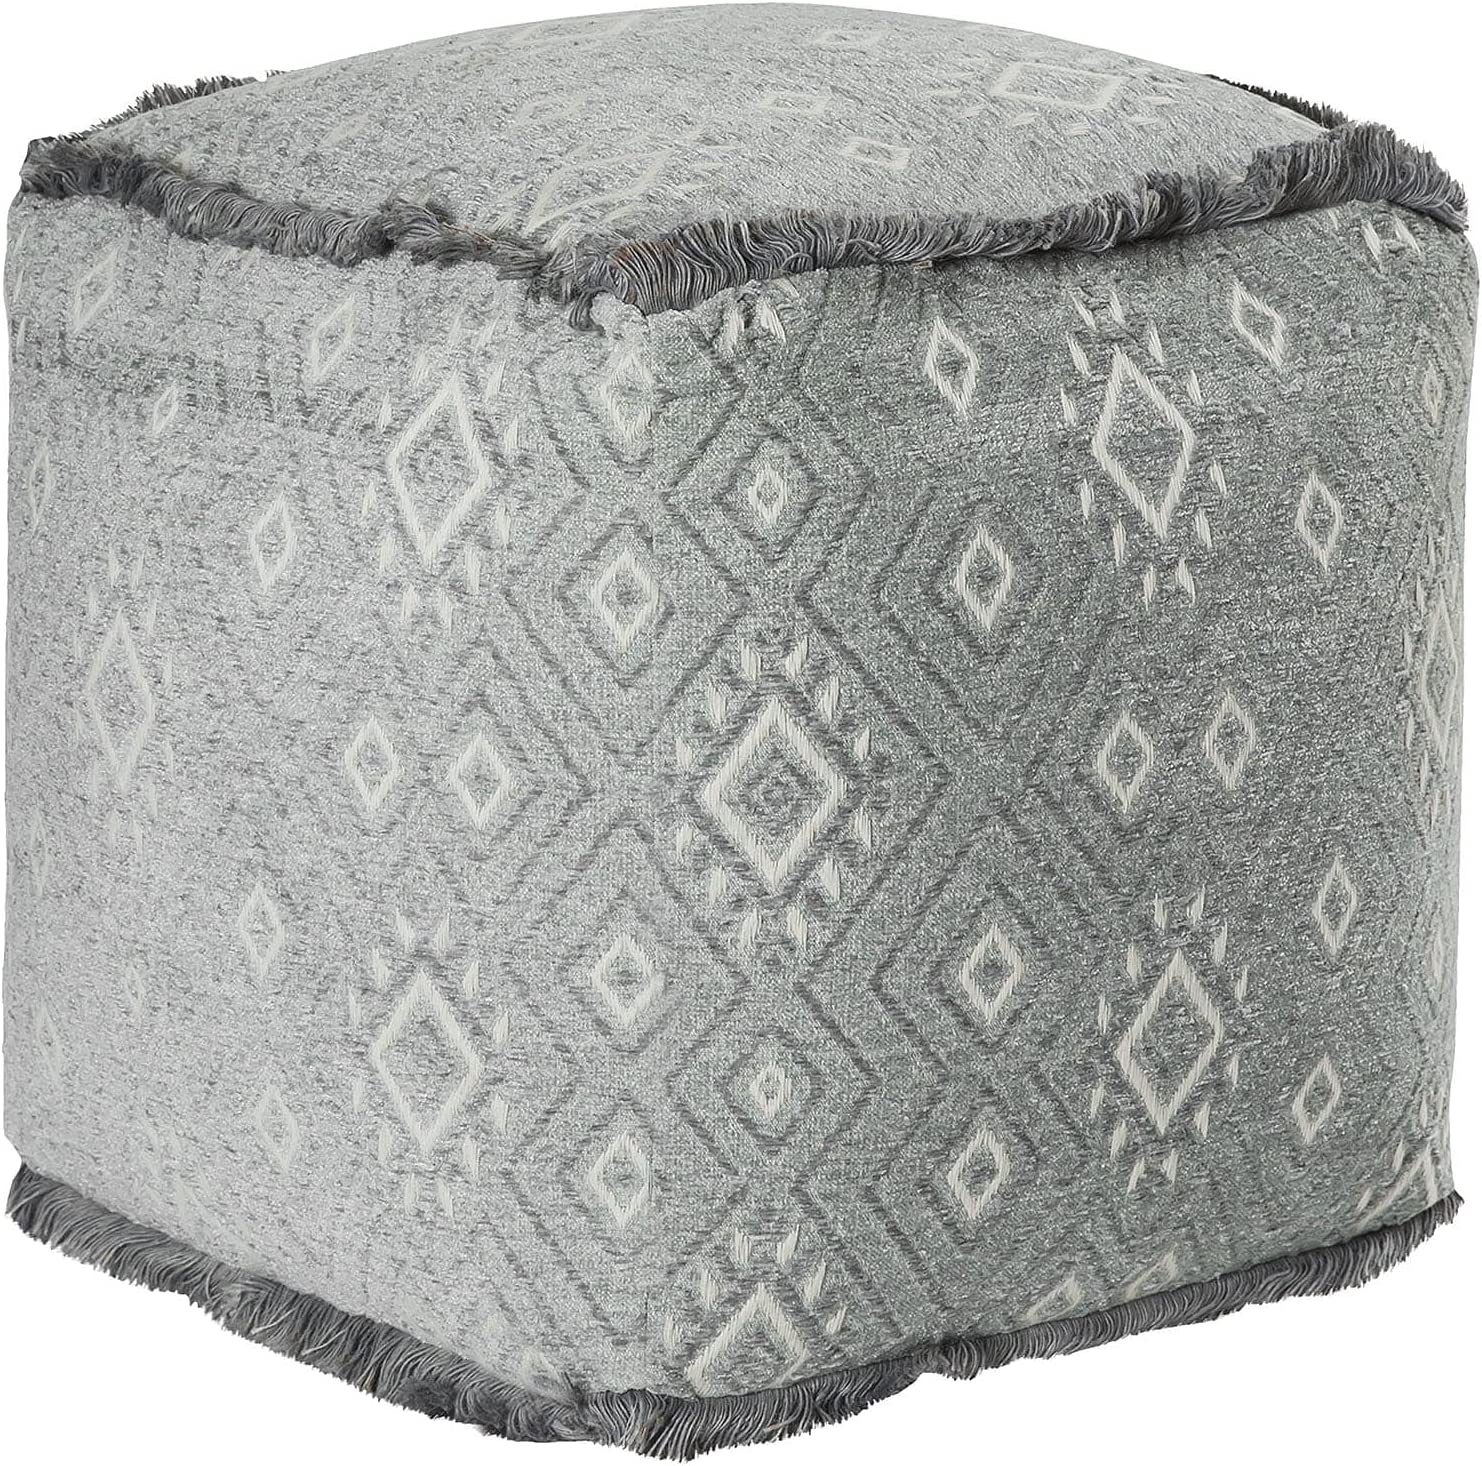 Oklahoma City Mall Unknown1 Pouf Grey Transitional Max 81% OFF Solid Cotton Square